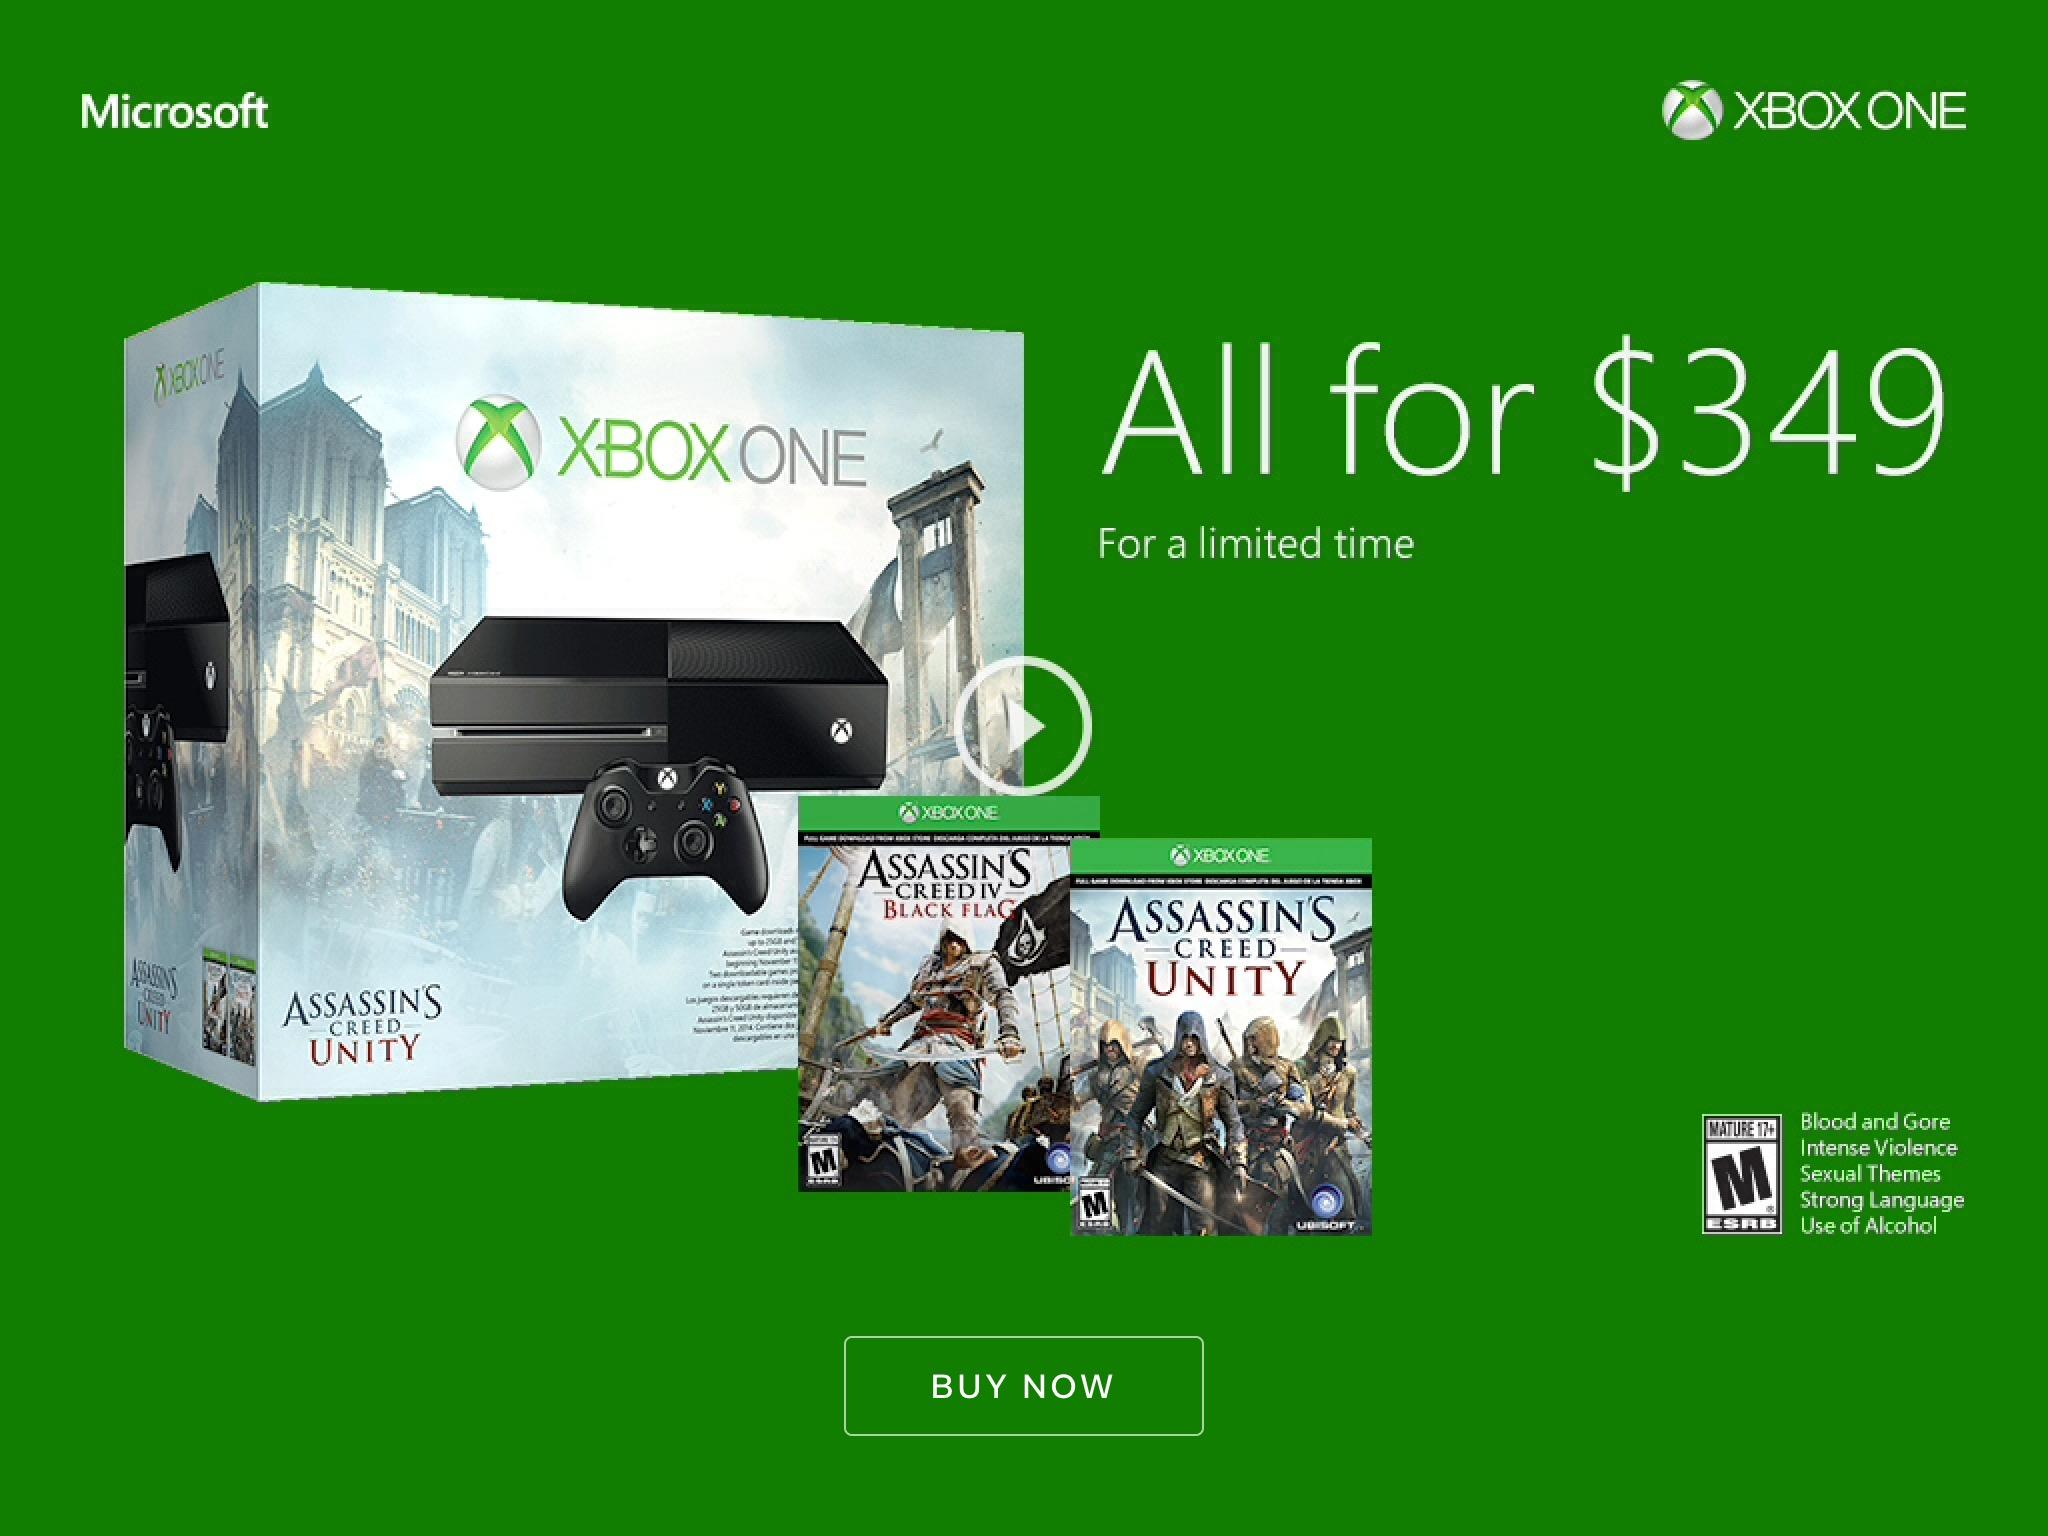 Microsoft's Xbox One Holiday Sales Pass Sony's PS4